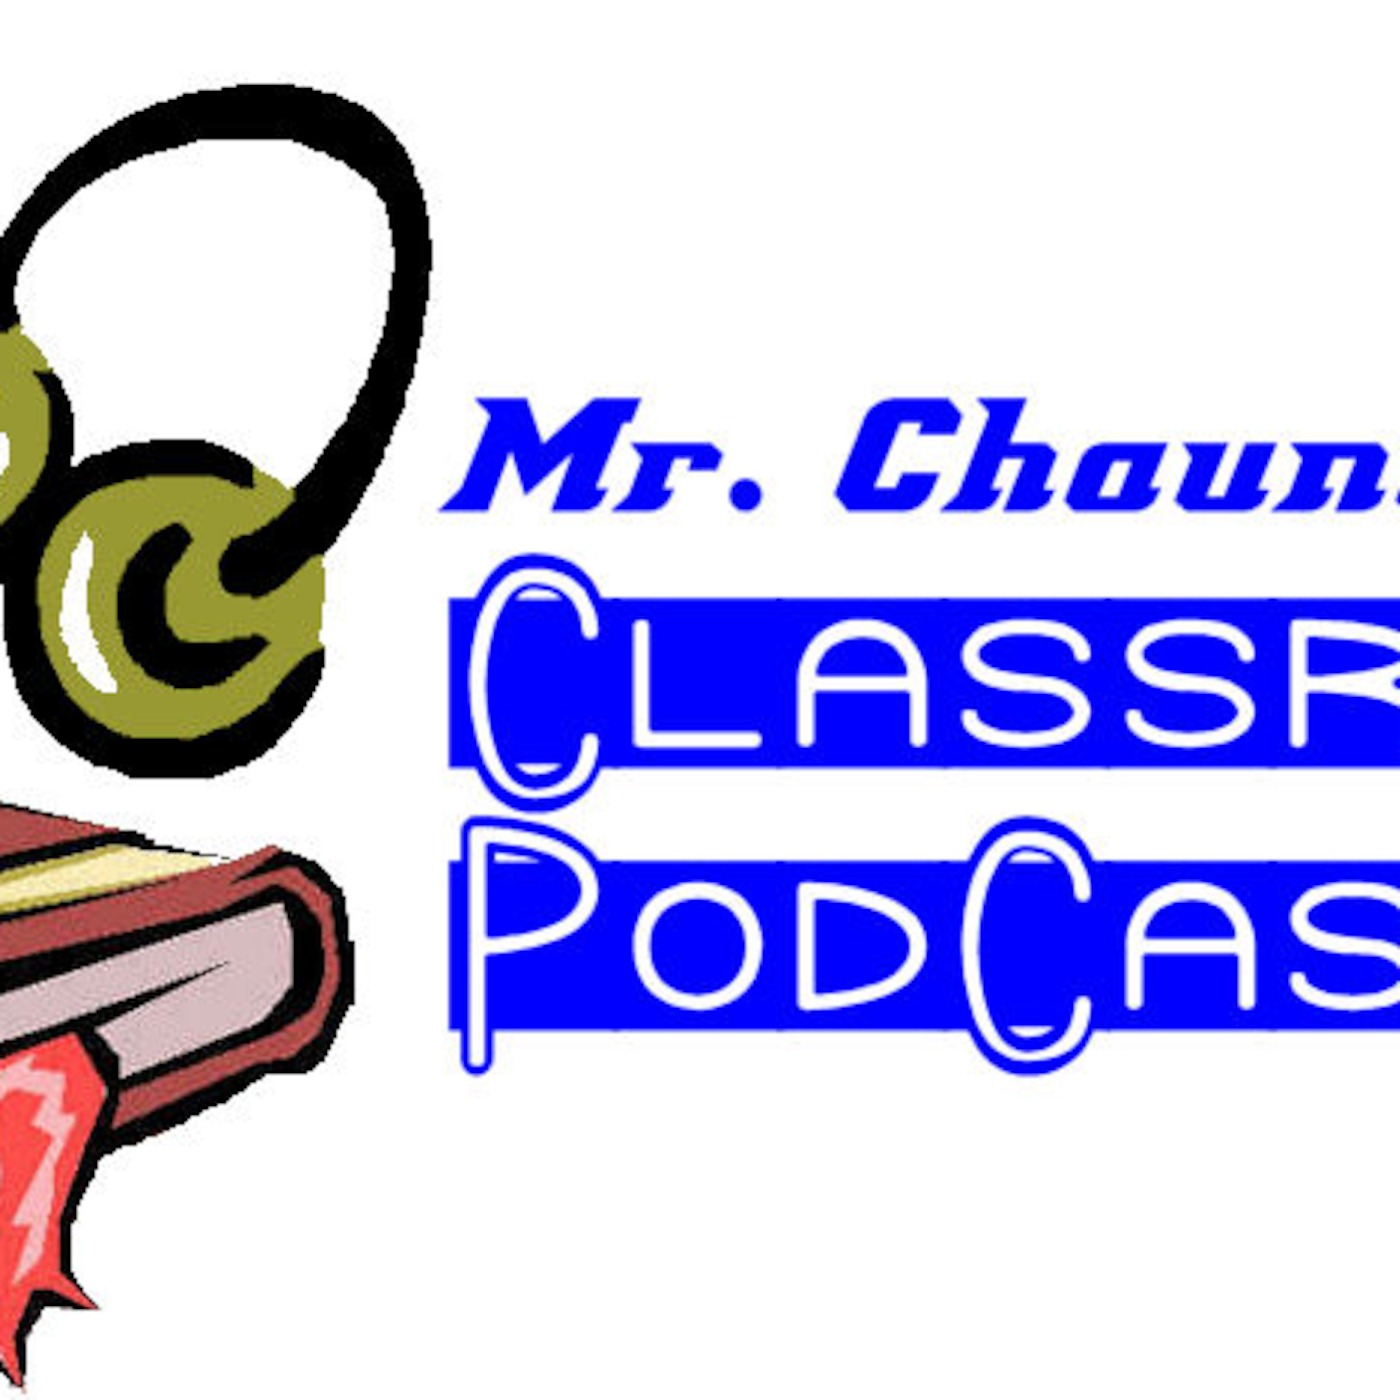 Mr. Chauncey's Class Podcasts